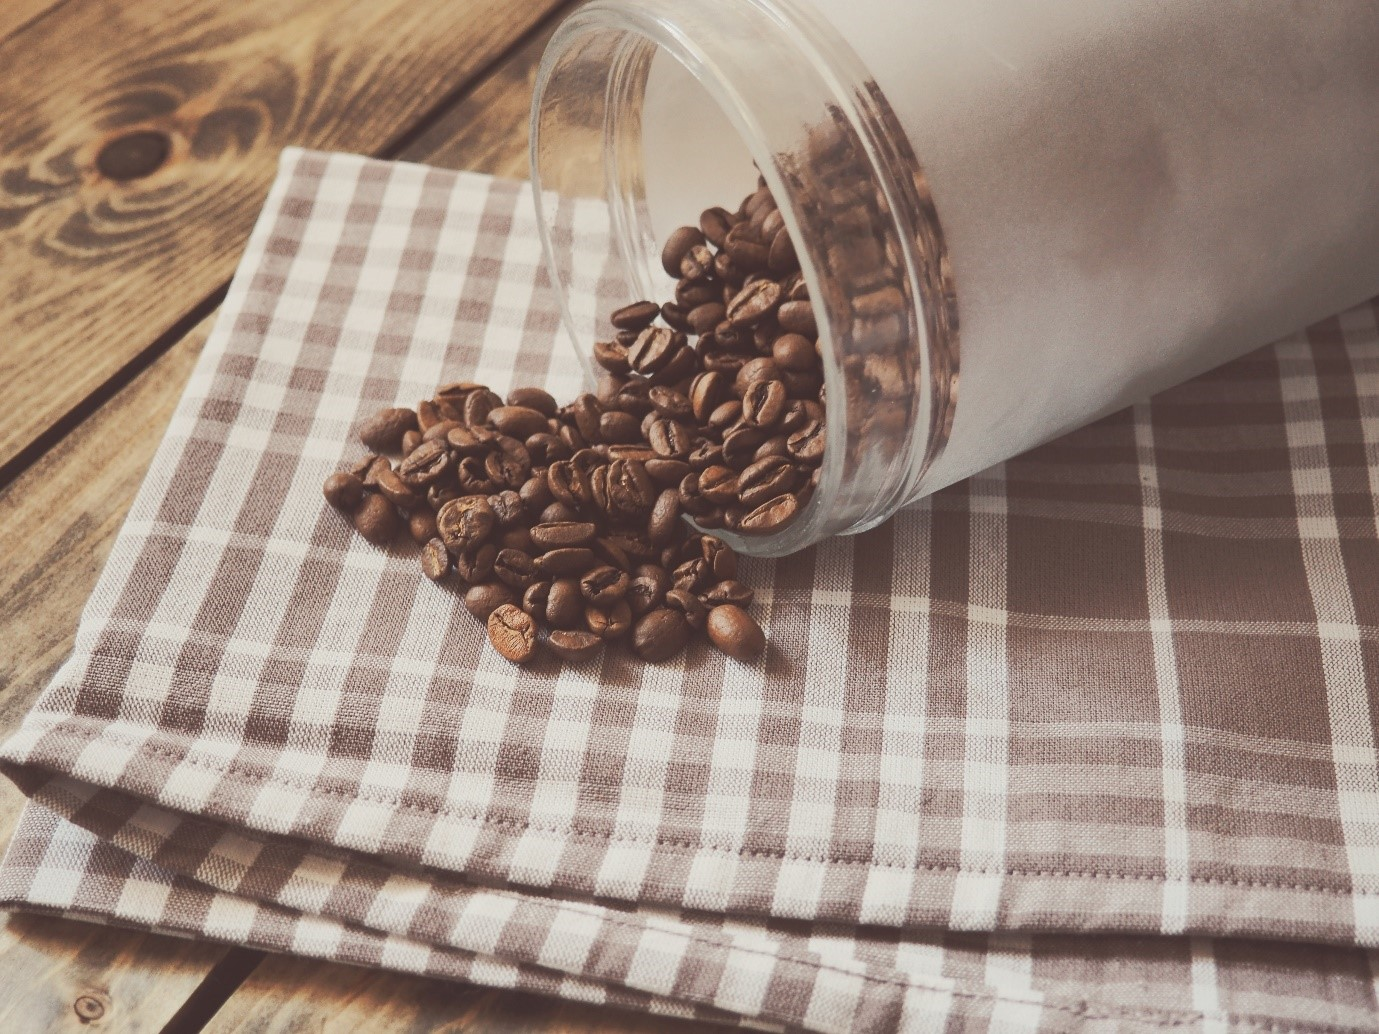 How to take good photos – coffee beans on top of handkerchief